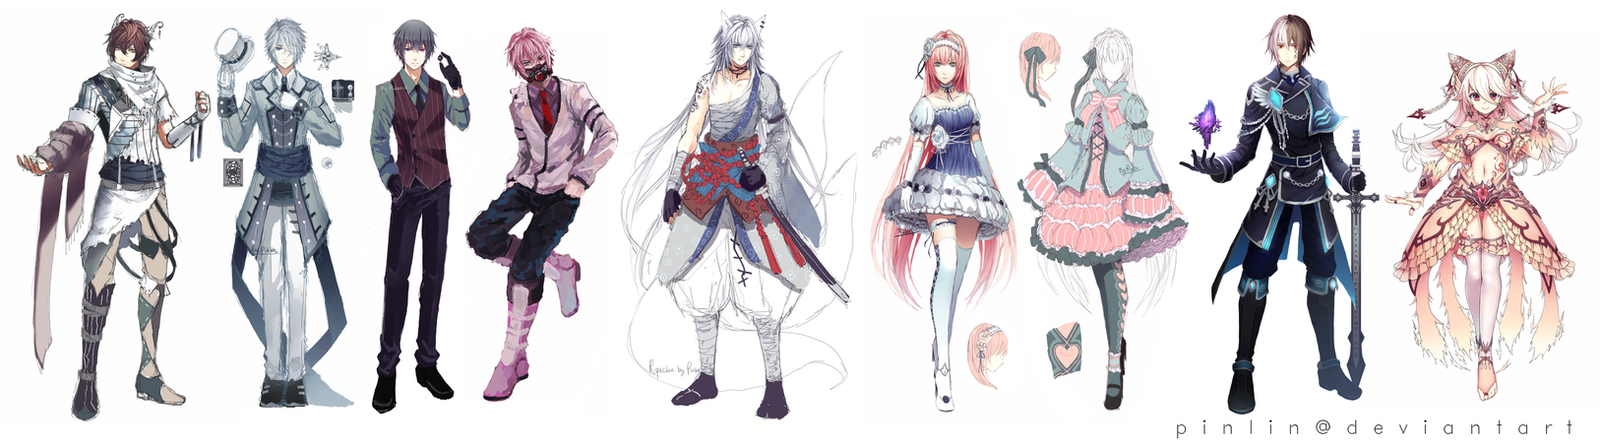 Character Design Deviantart : Character designs by pinlin on deviantart